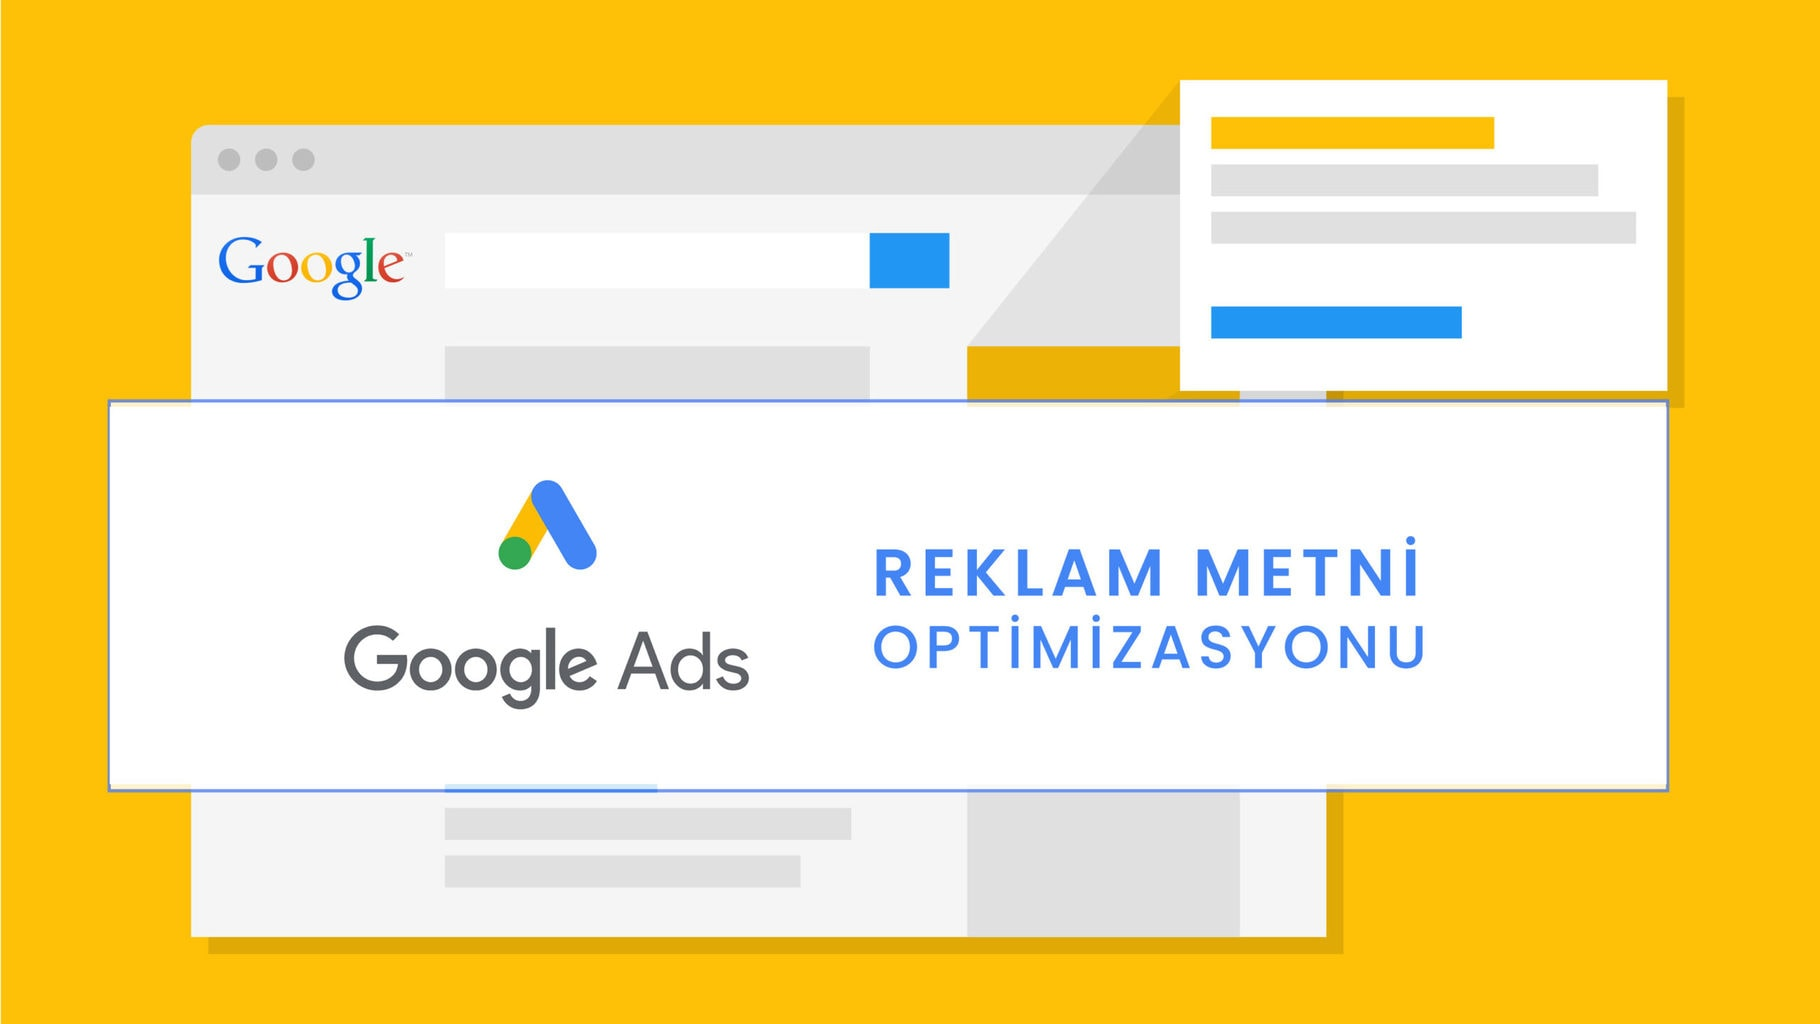 Google Adwords Reklam Metni Optimizasyonu